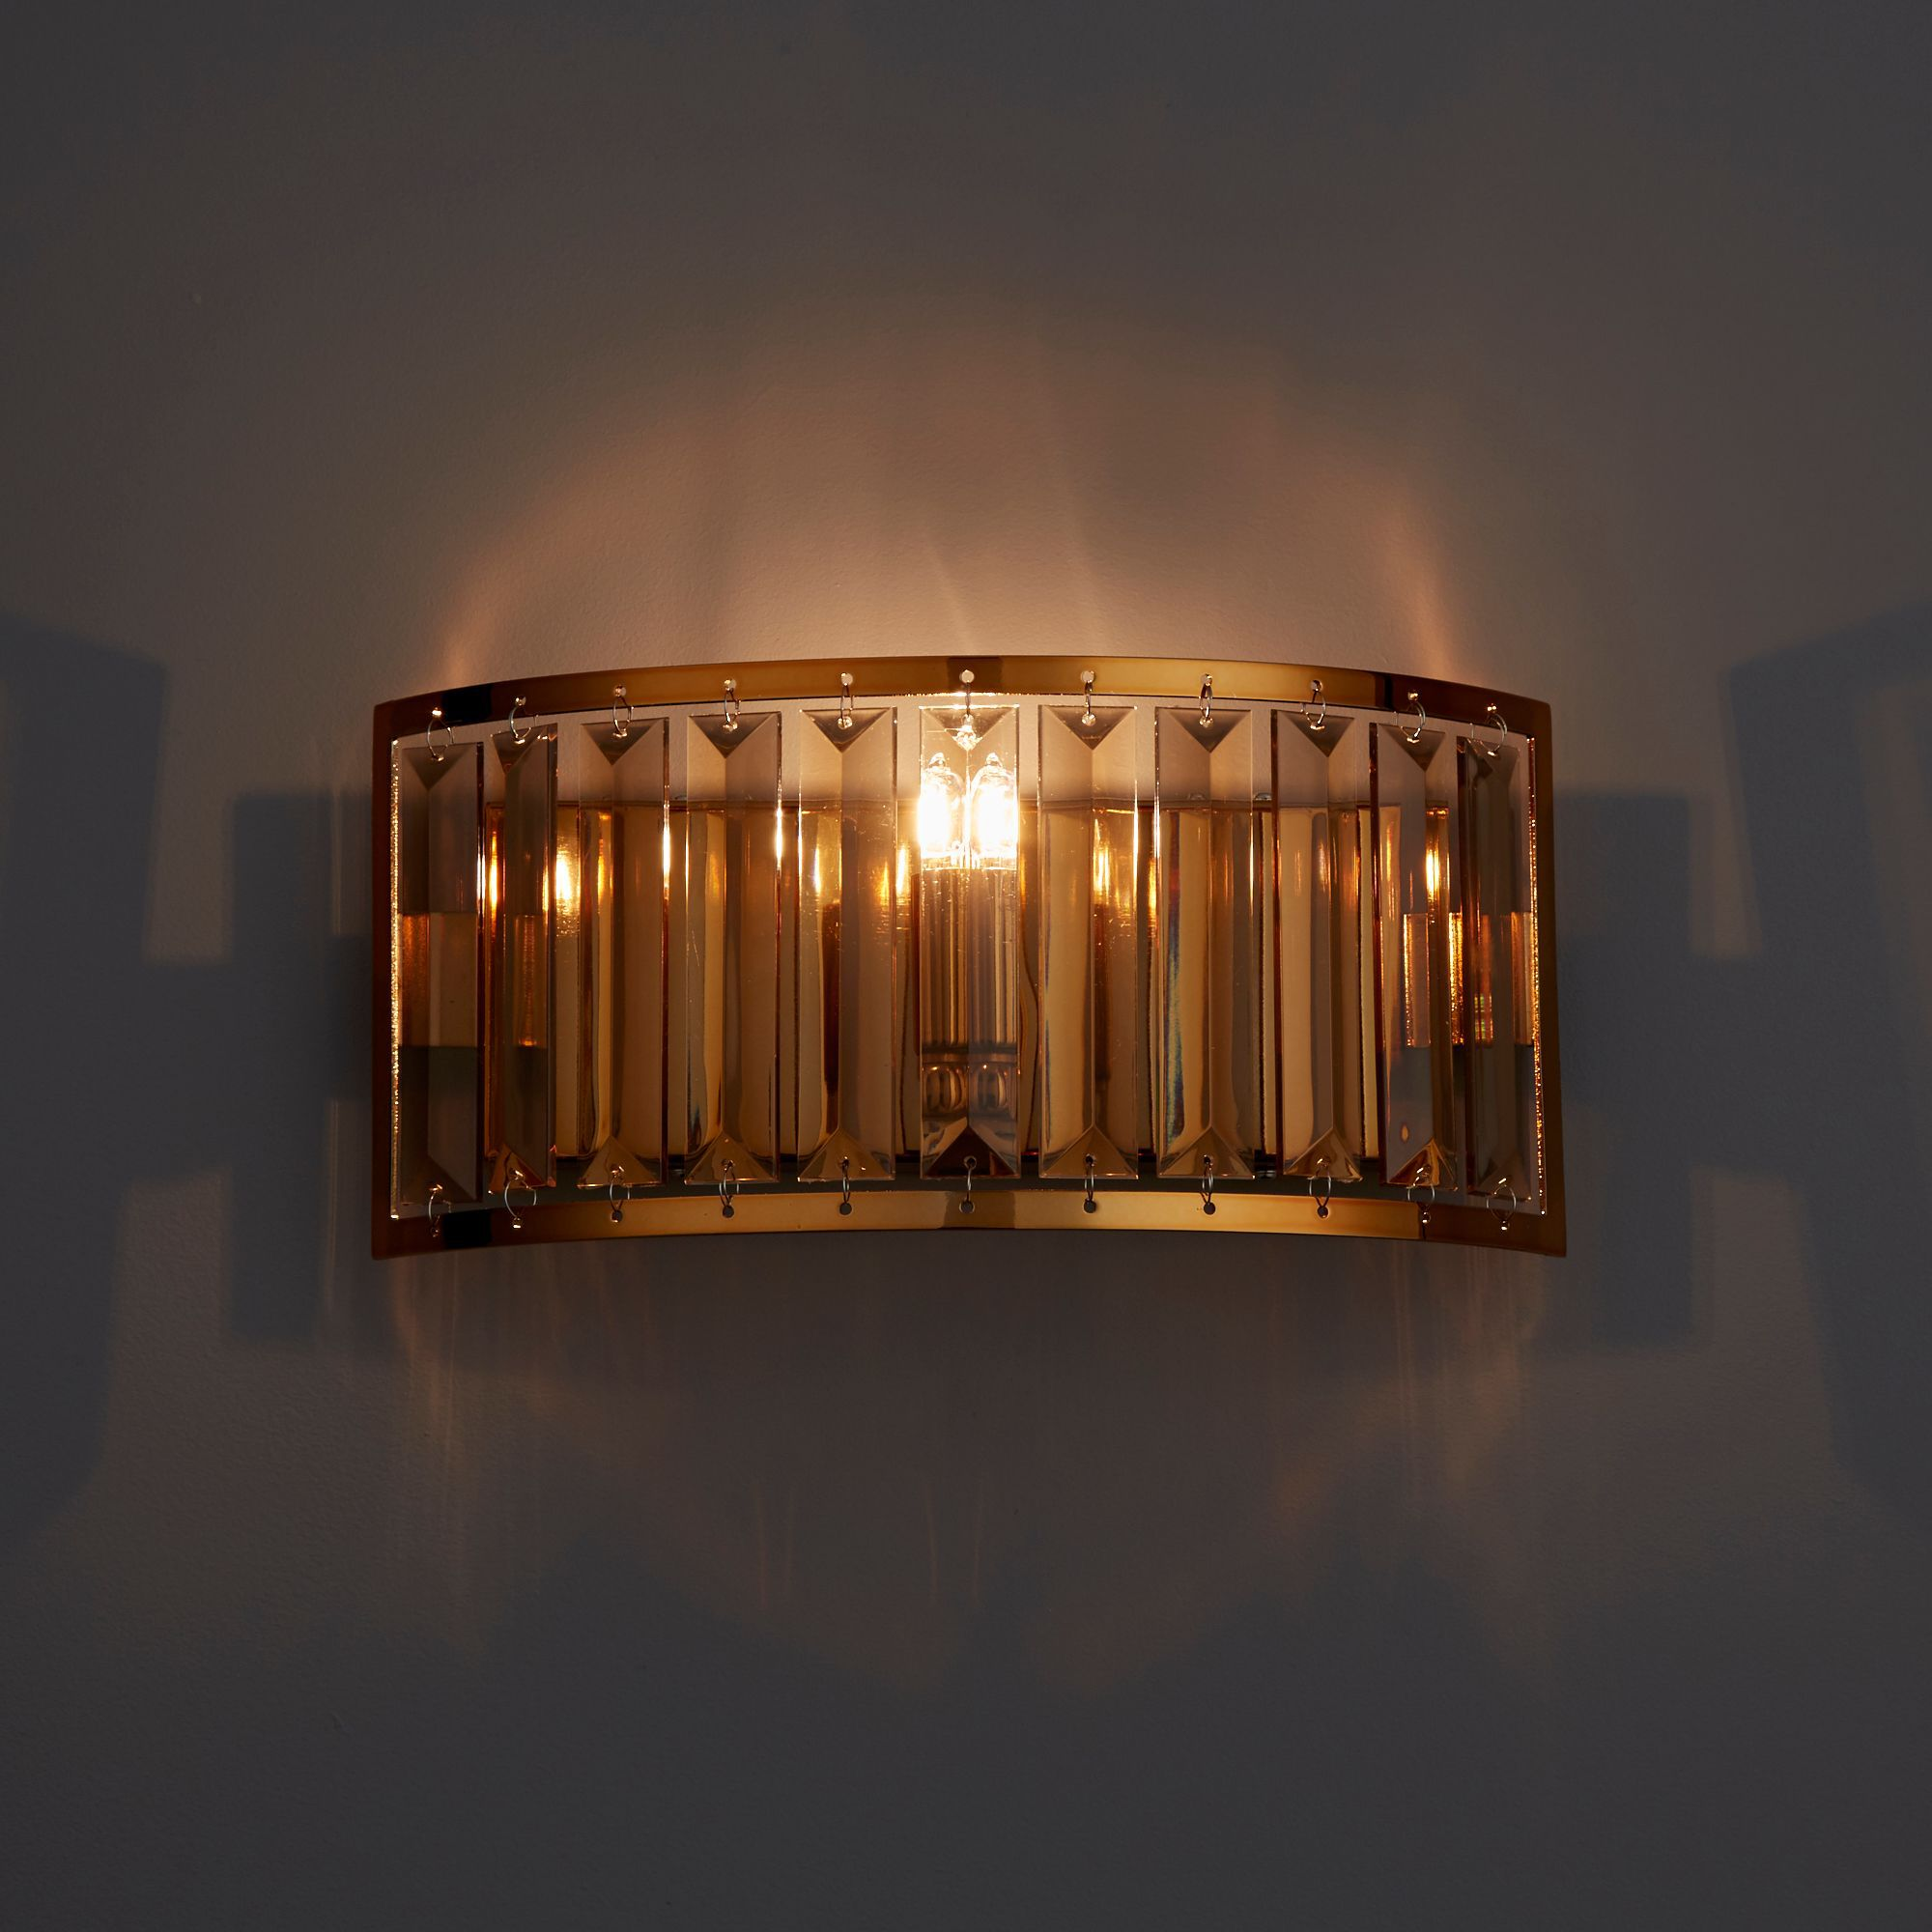 Dione Warm Copper Plate Effect Wall Light Departments DIY at B&Q